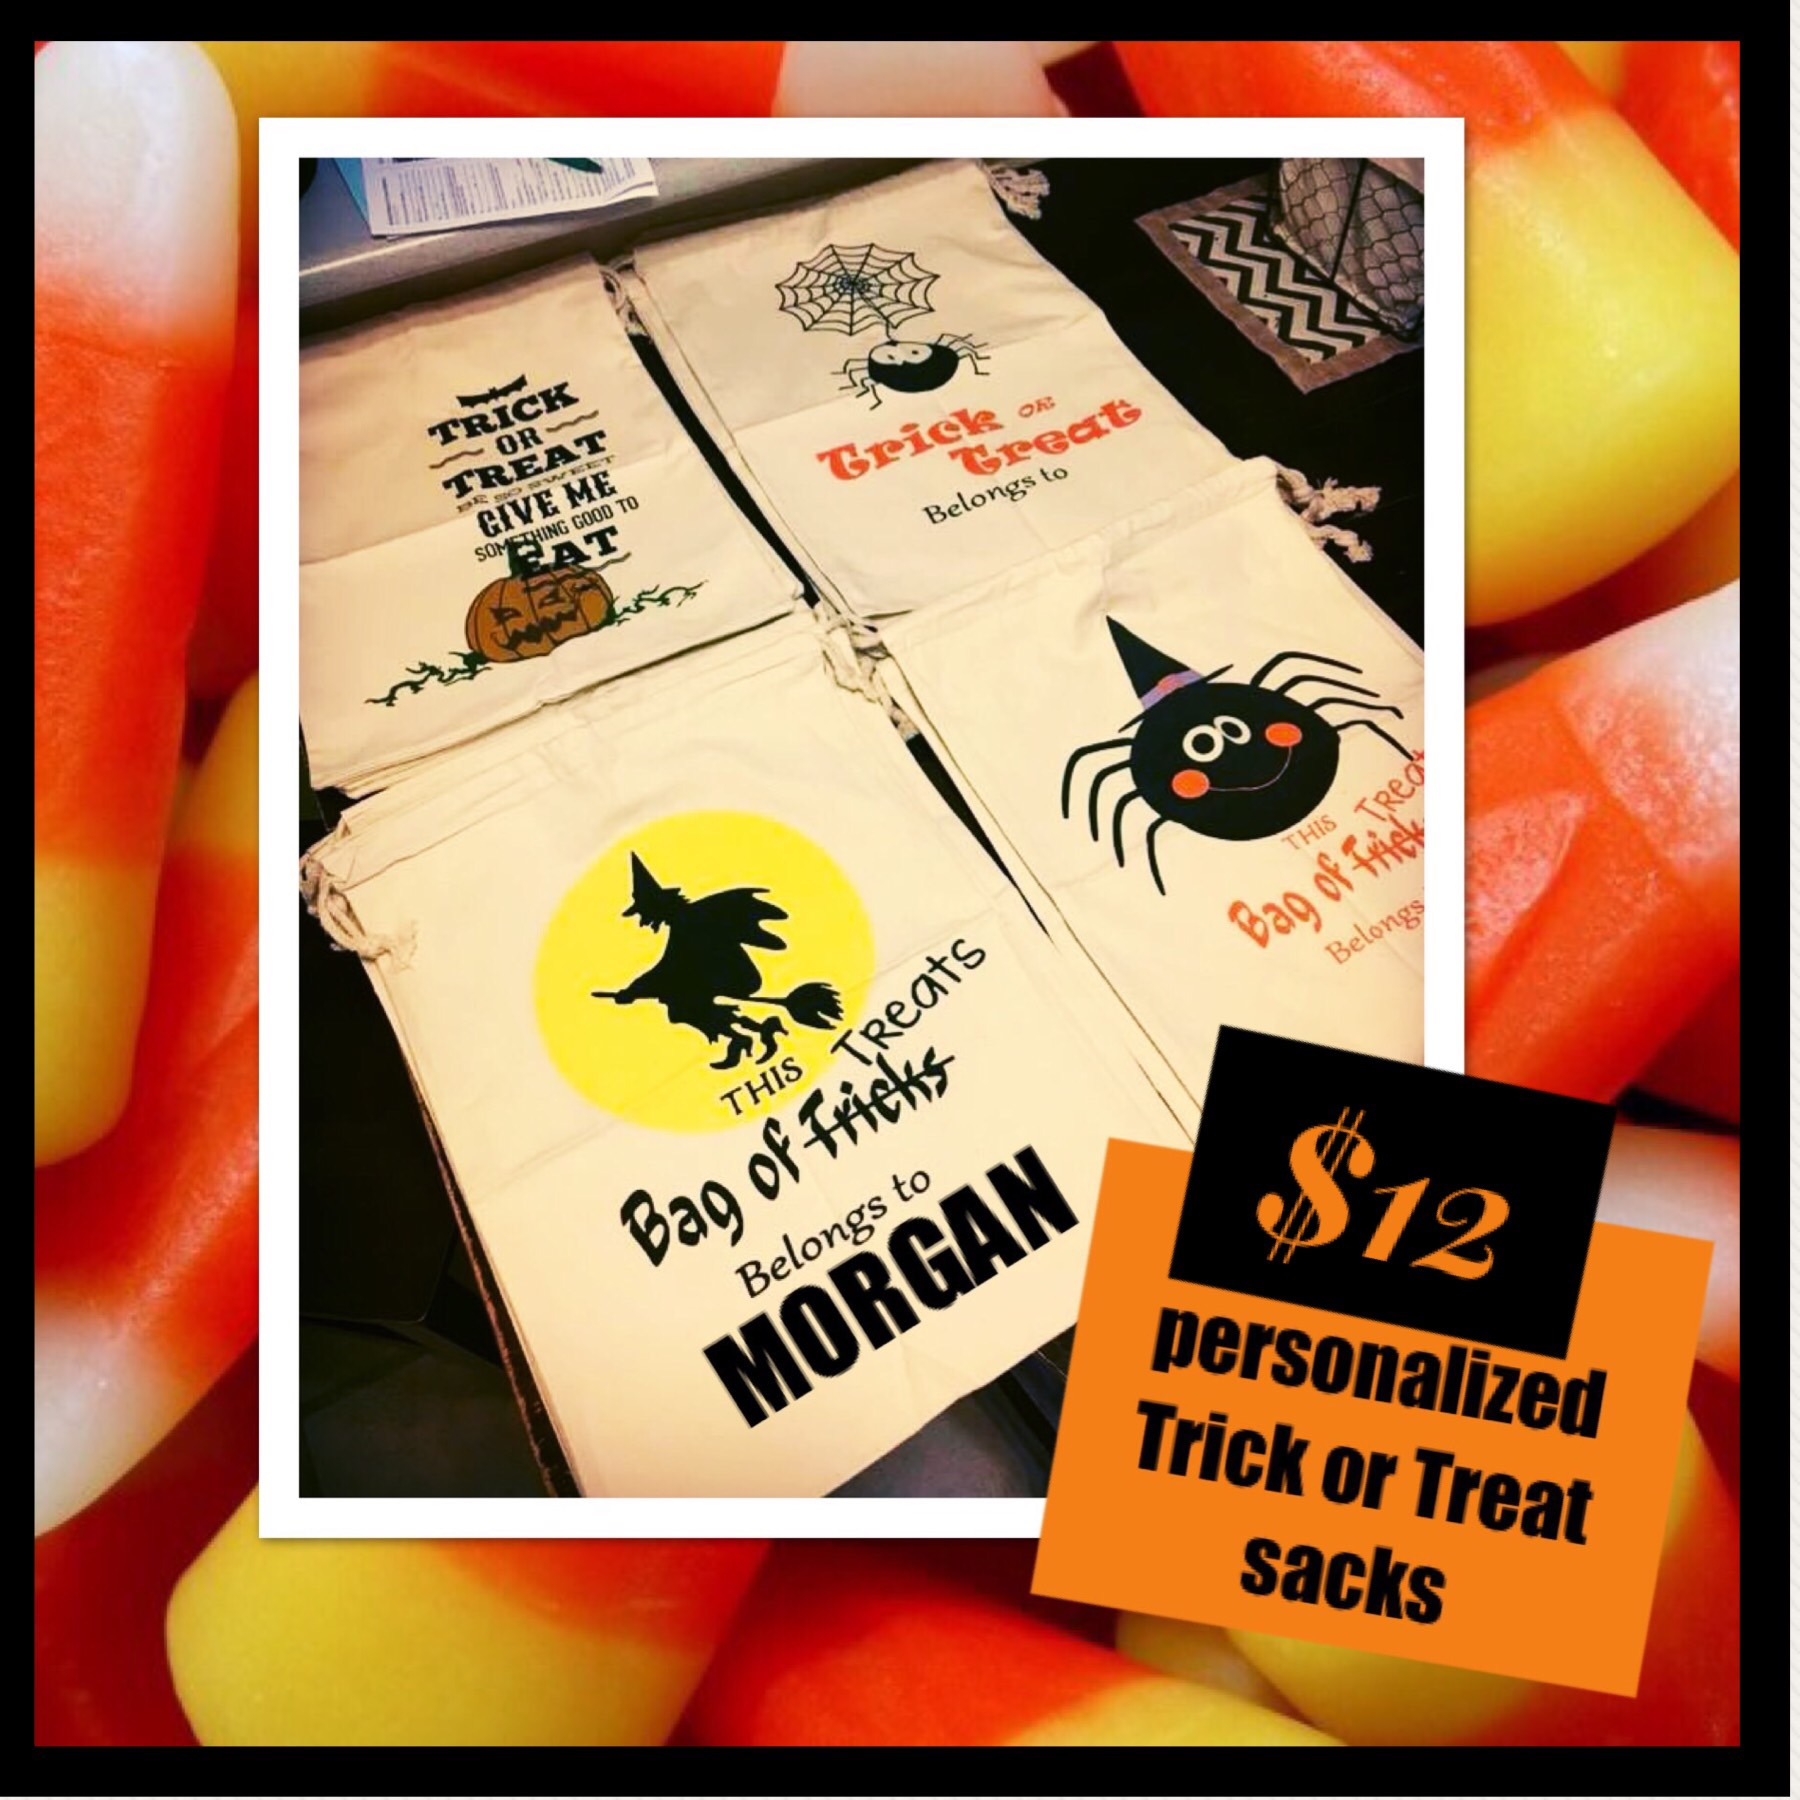 Order your personalized Trick or Treat Sacks Here